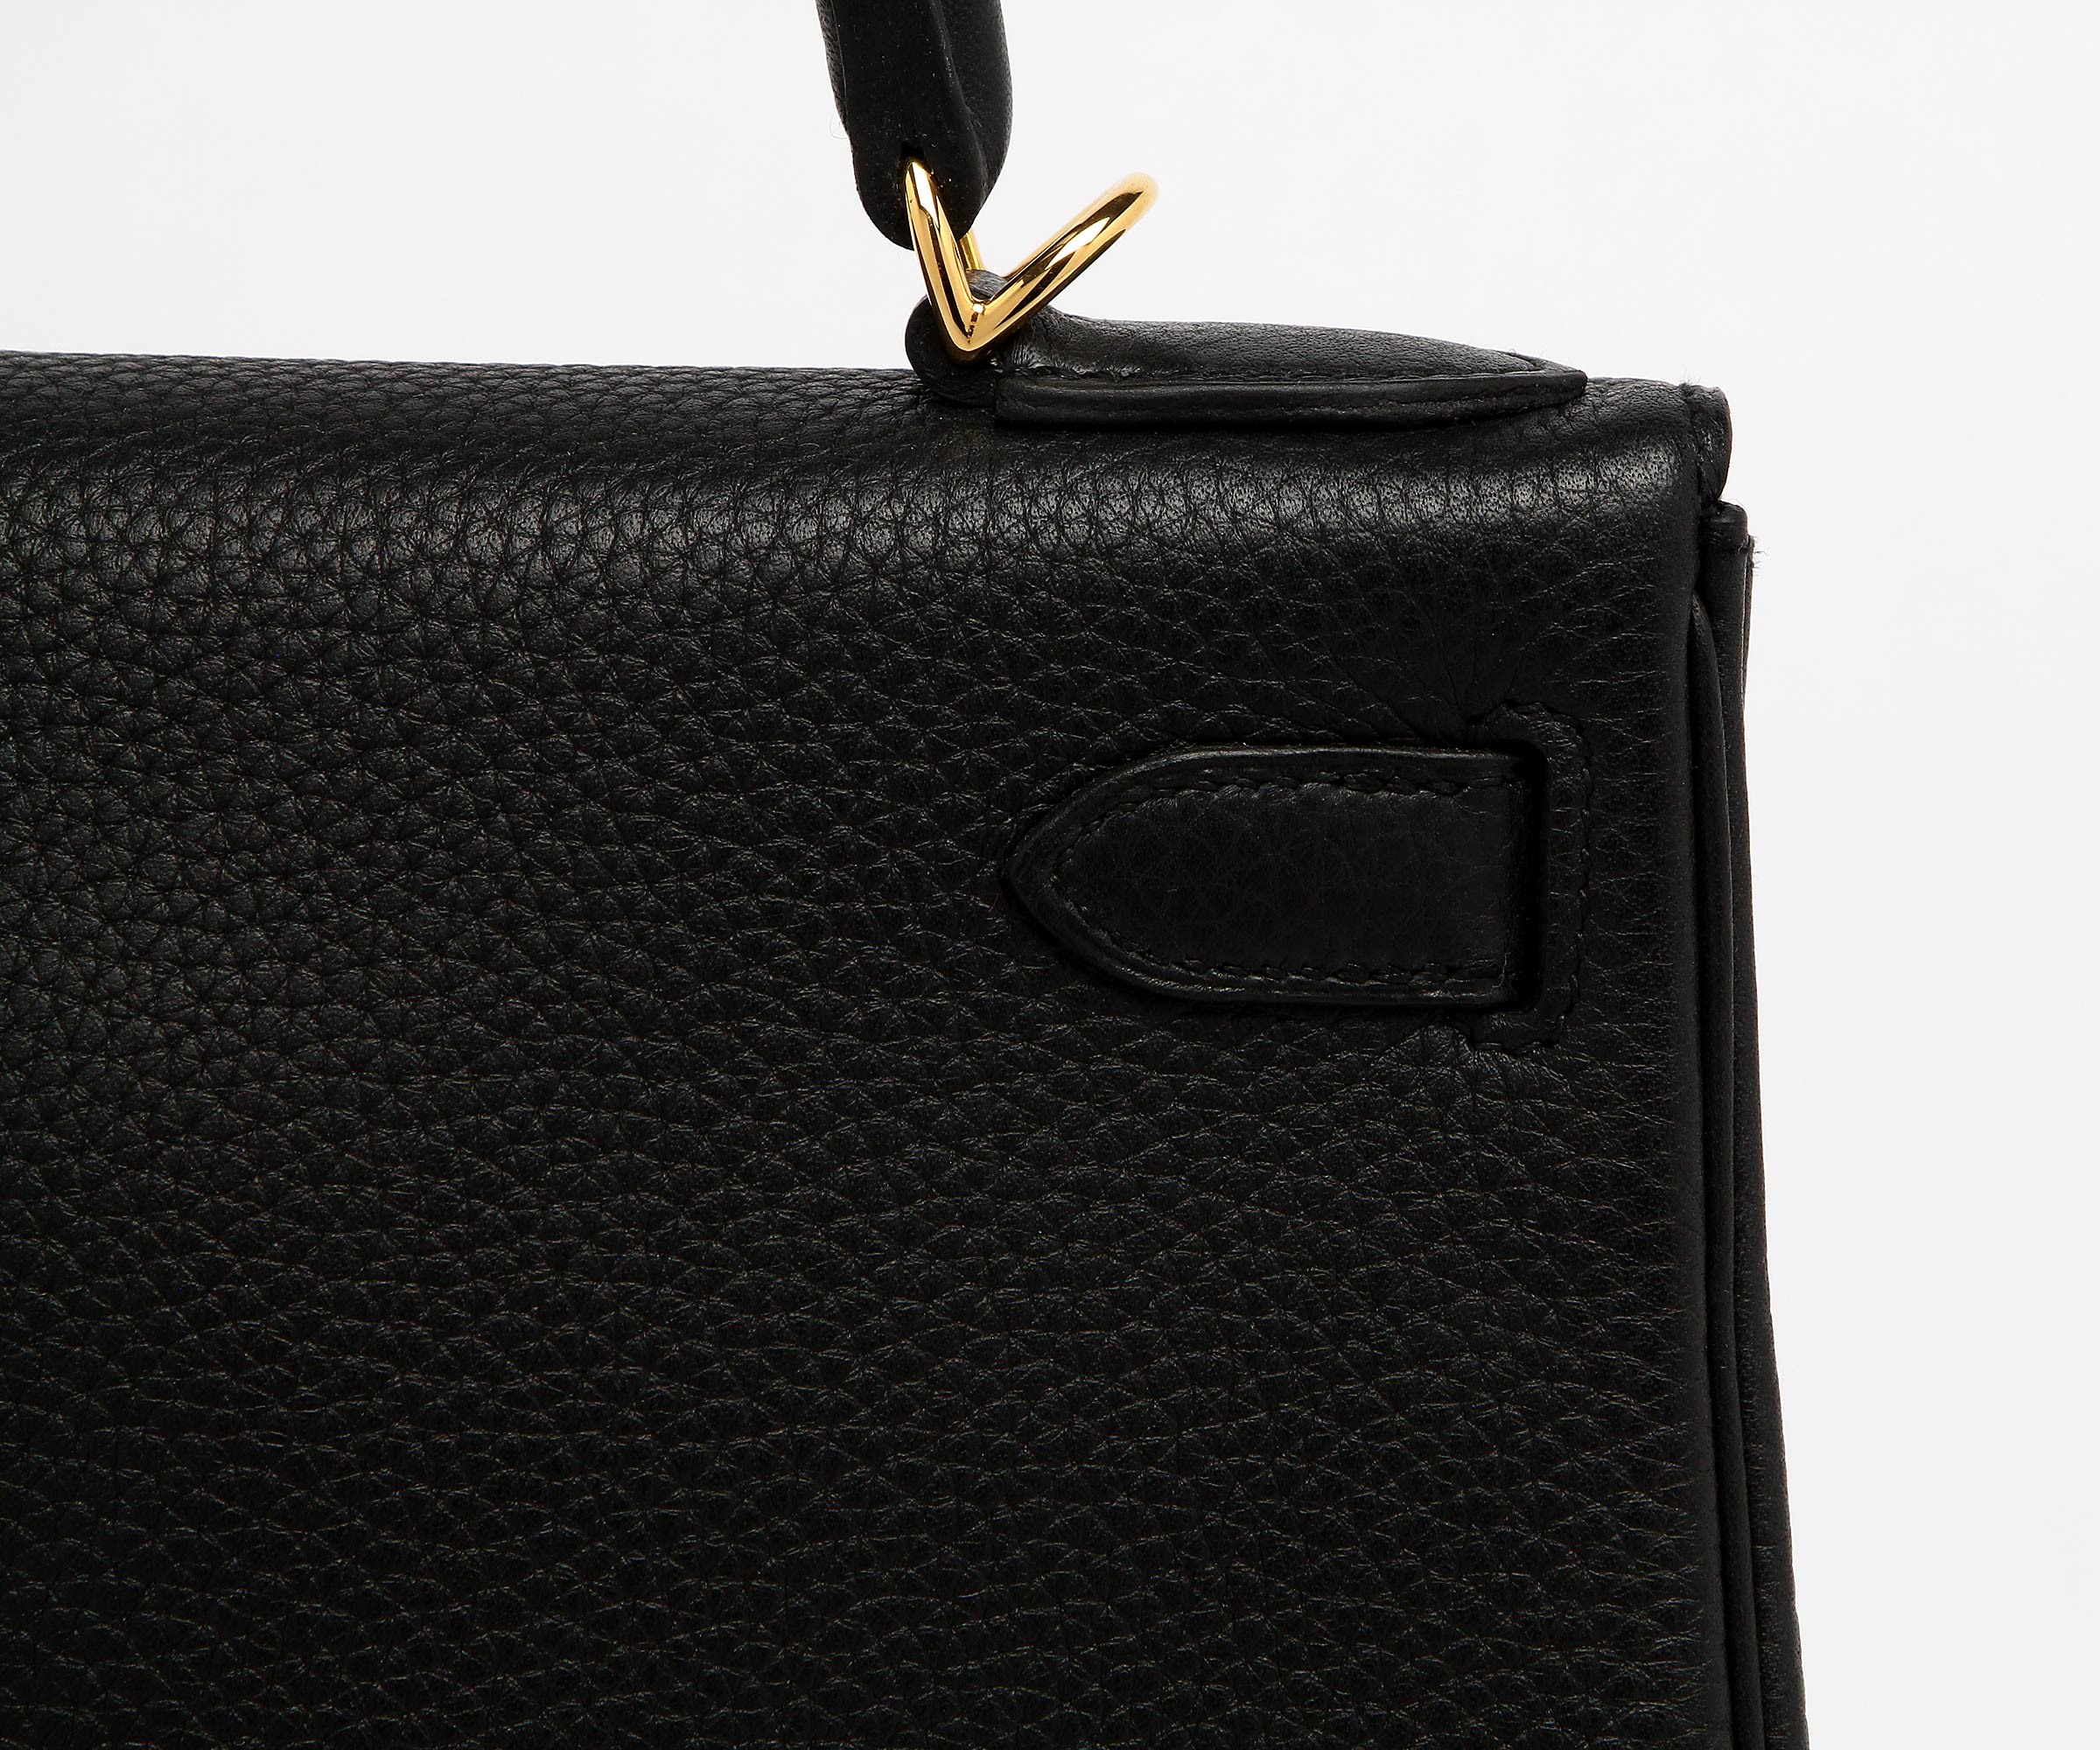 Hermes Black Clemence Kelly 28cm Palladium Hardware